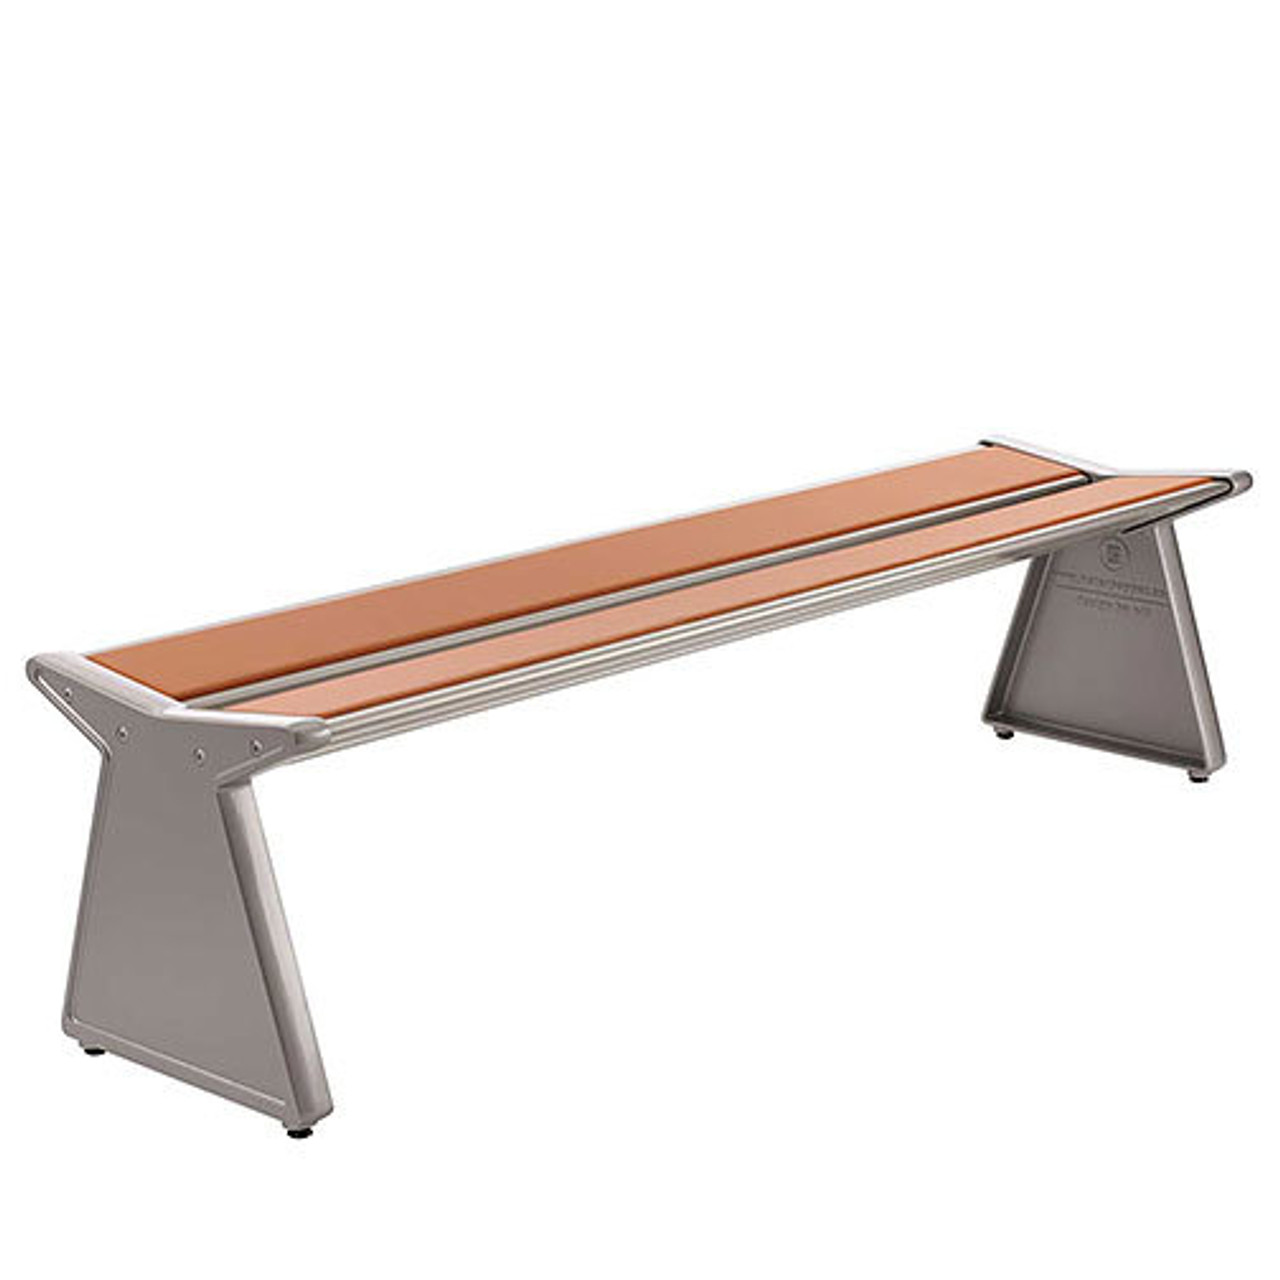 Peter Pepper Wing Benches